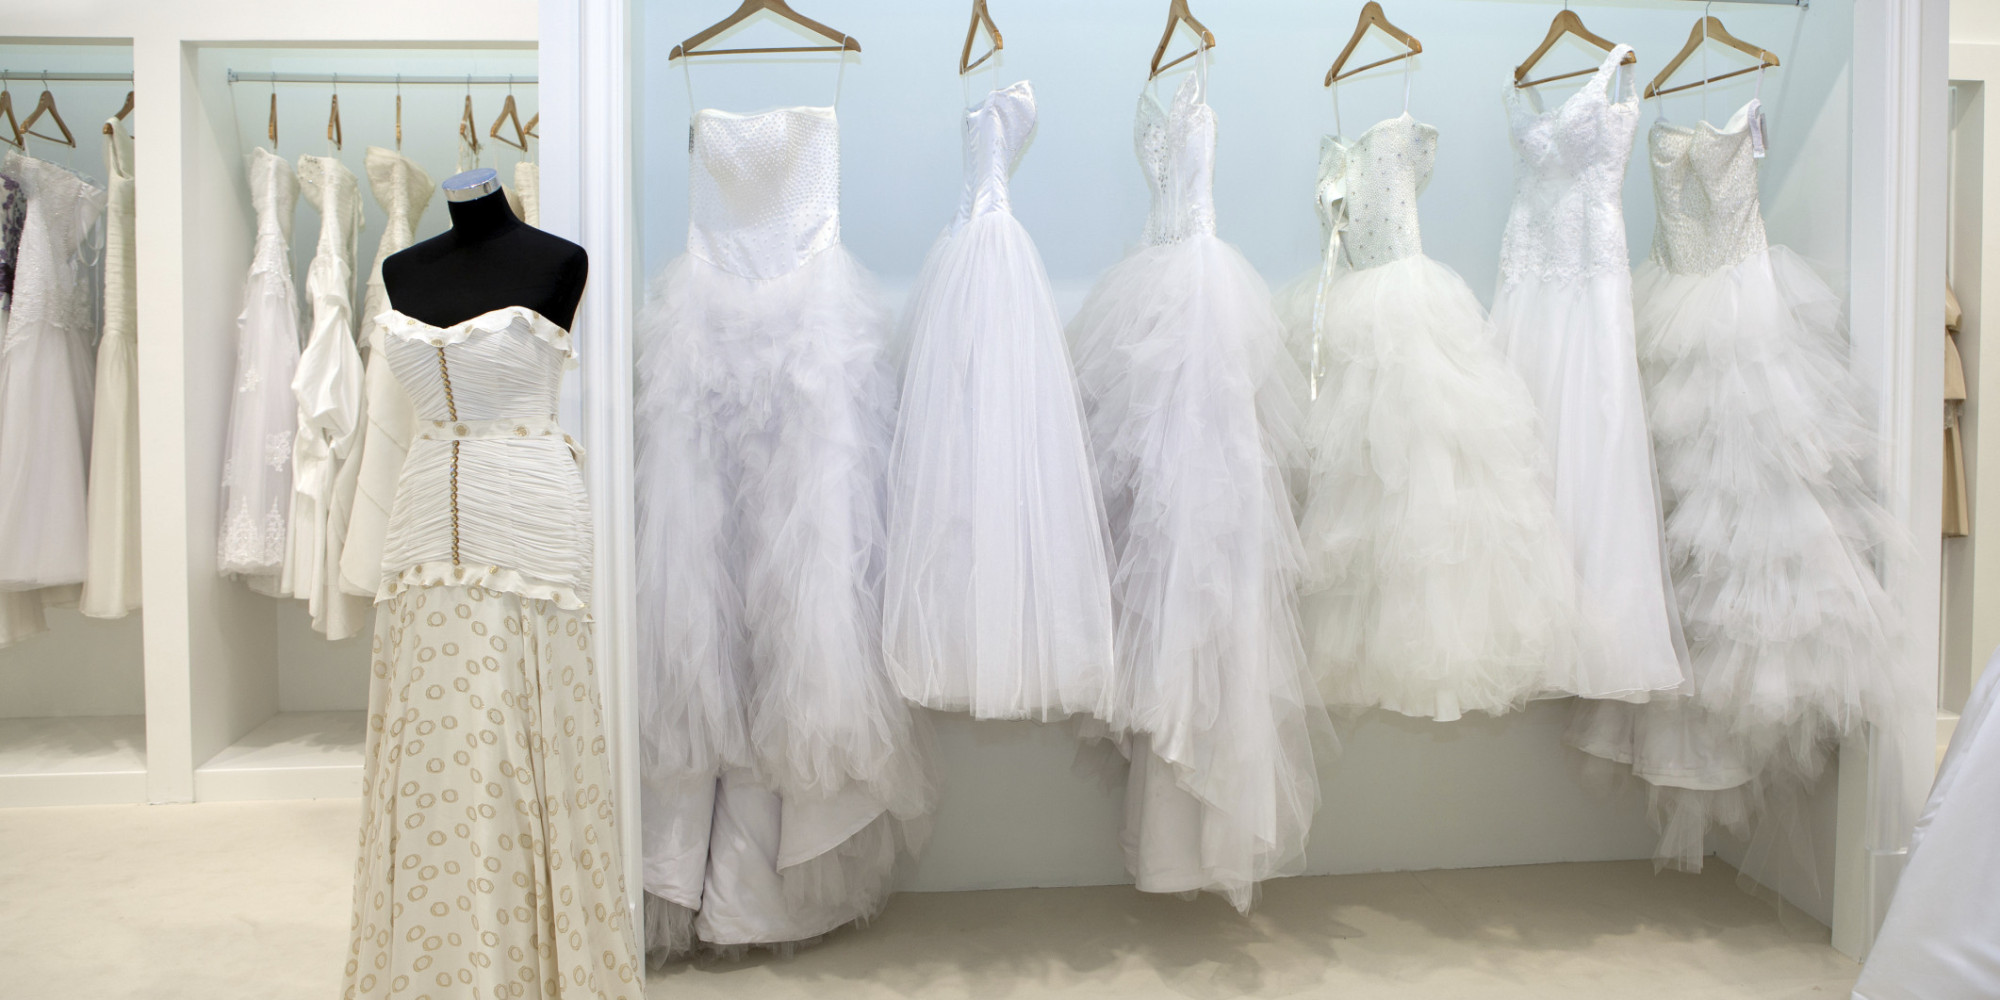 The 5 Biggest Mistakes Brides Make When Shopping For A Wedding Dress ...